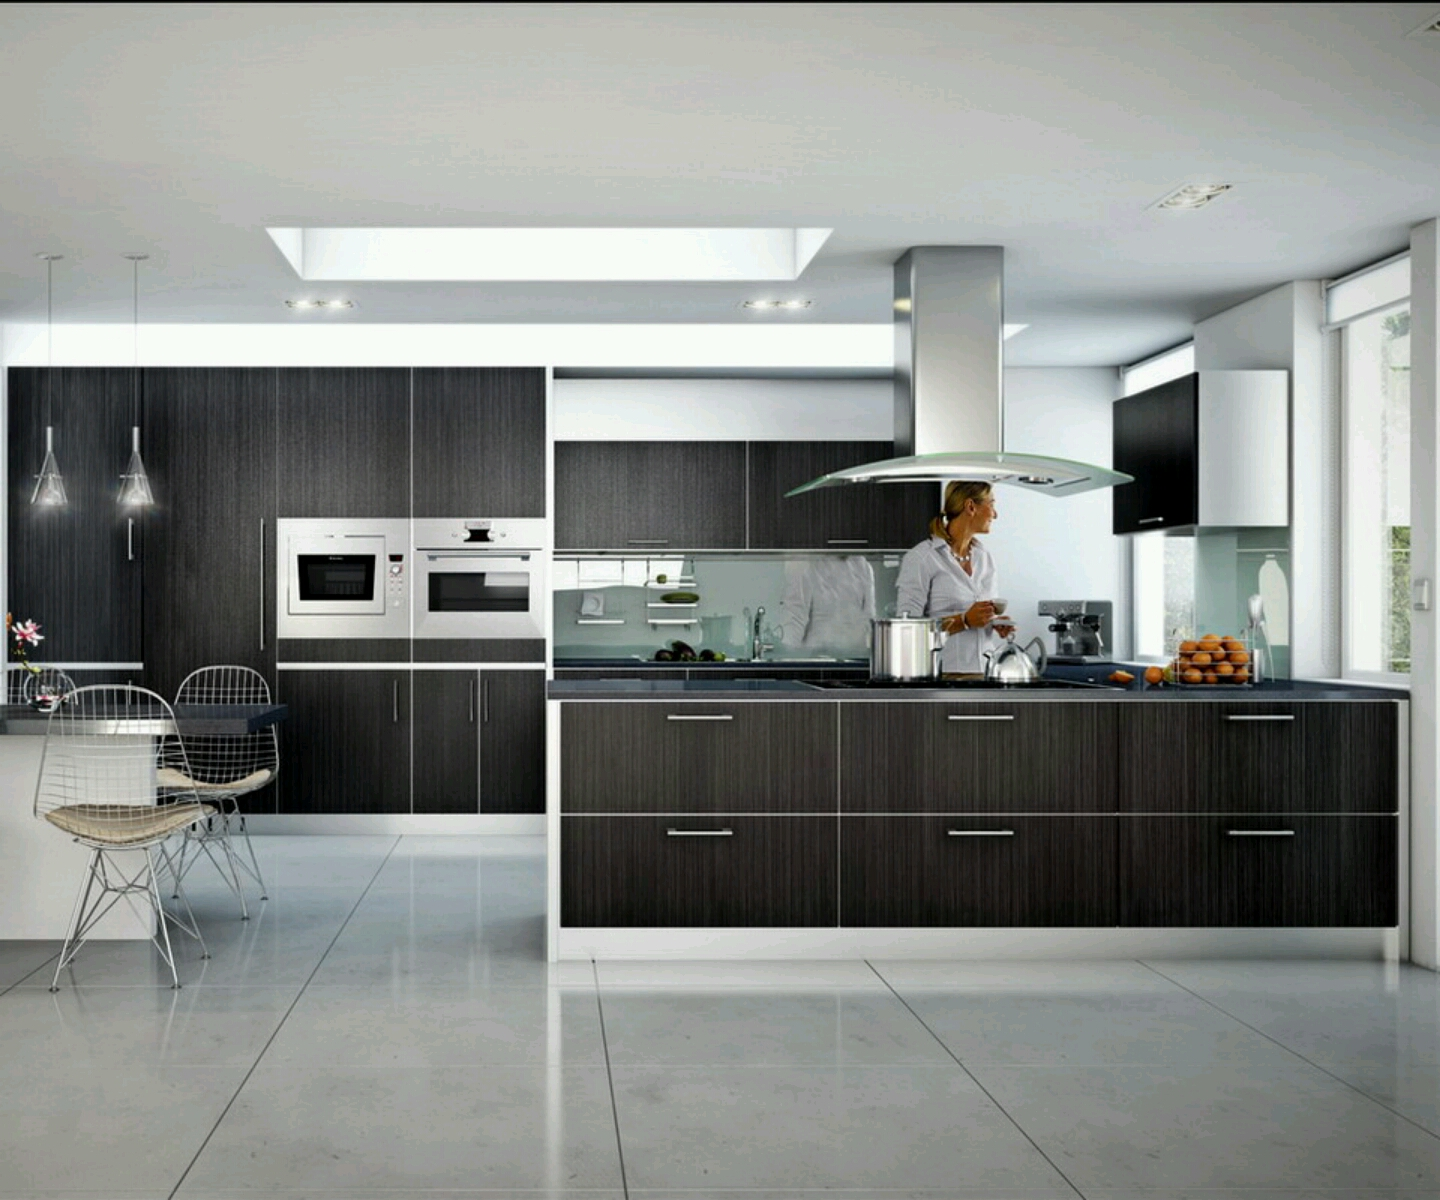 rumah rumah minimalis: Modern homes ultra modern kitchen ...